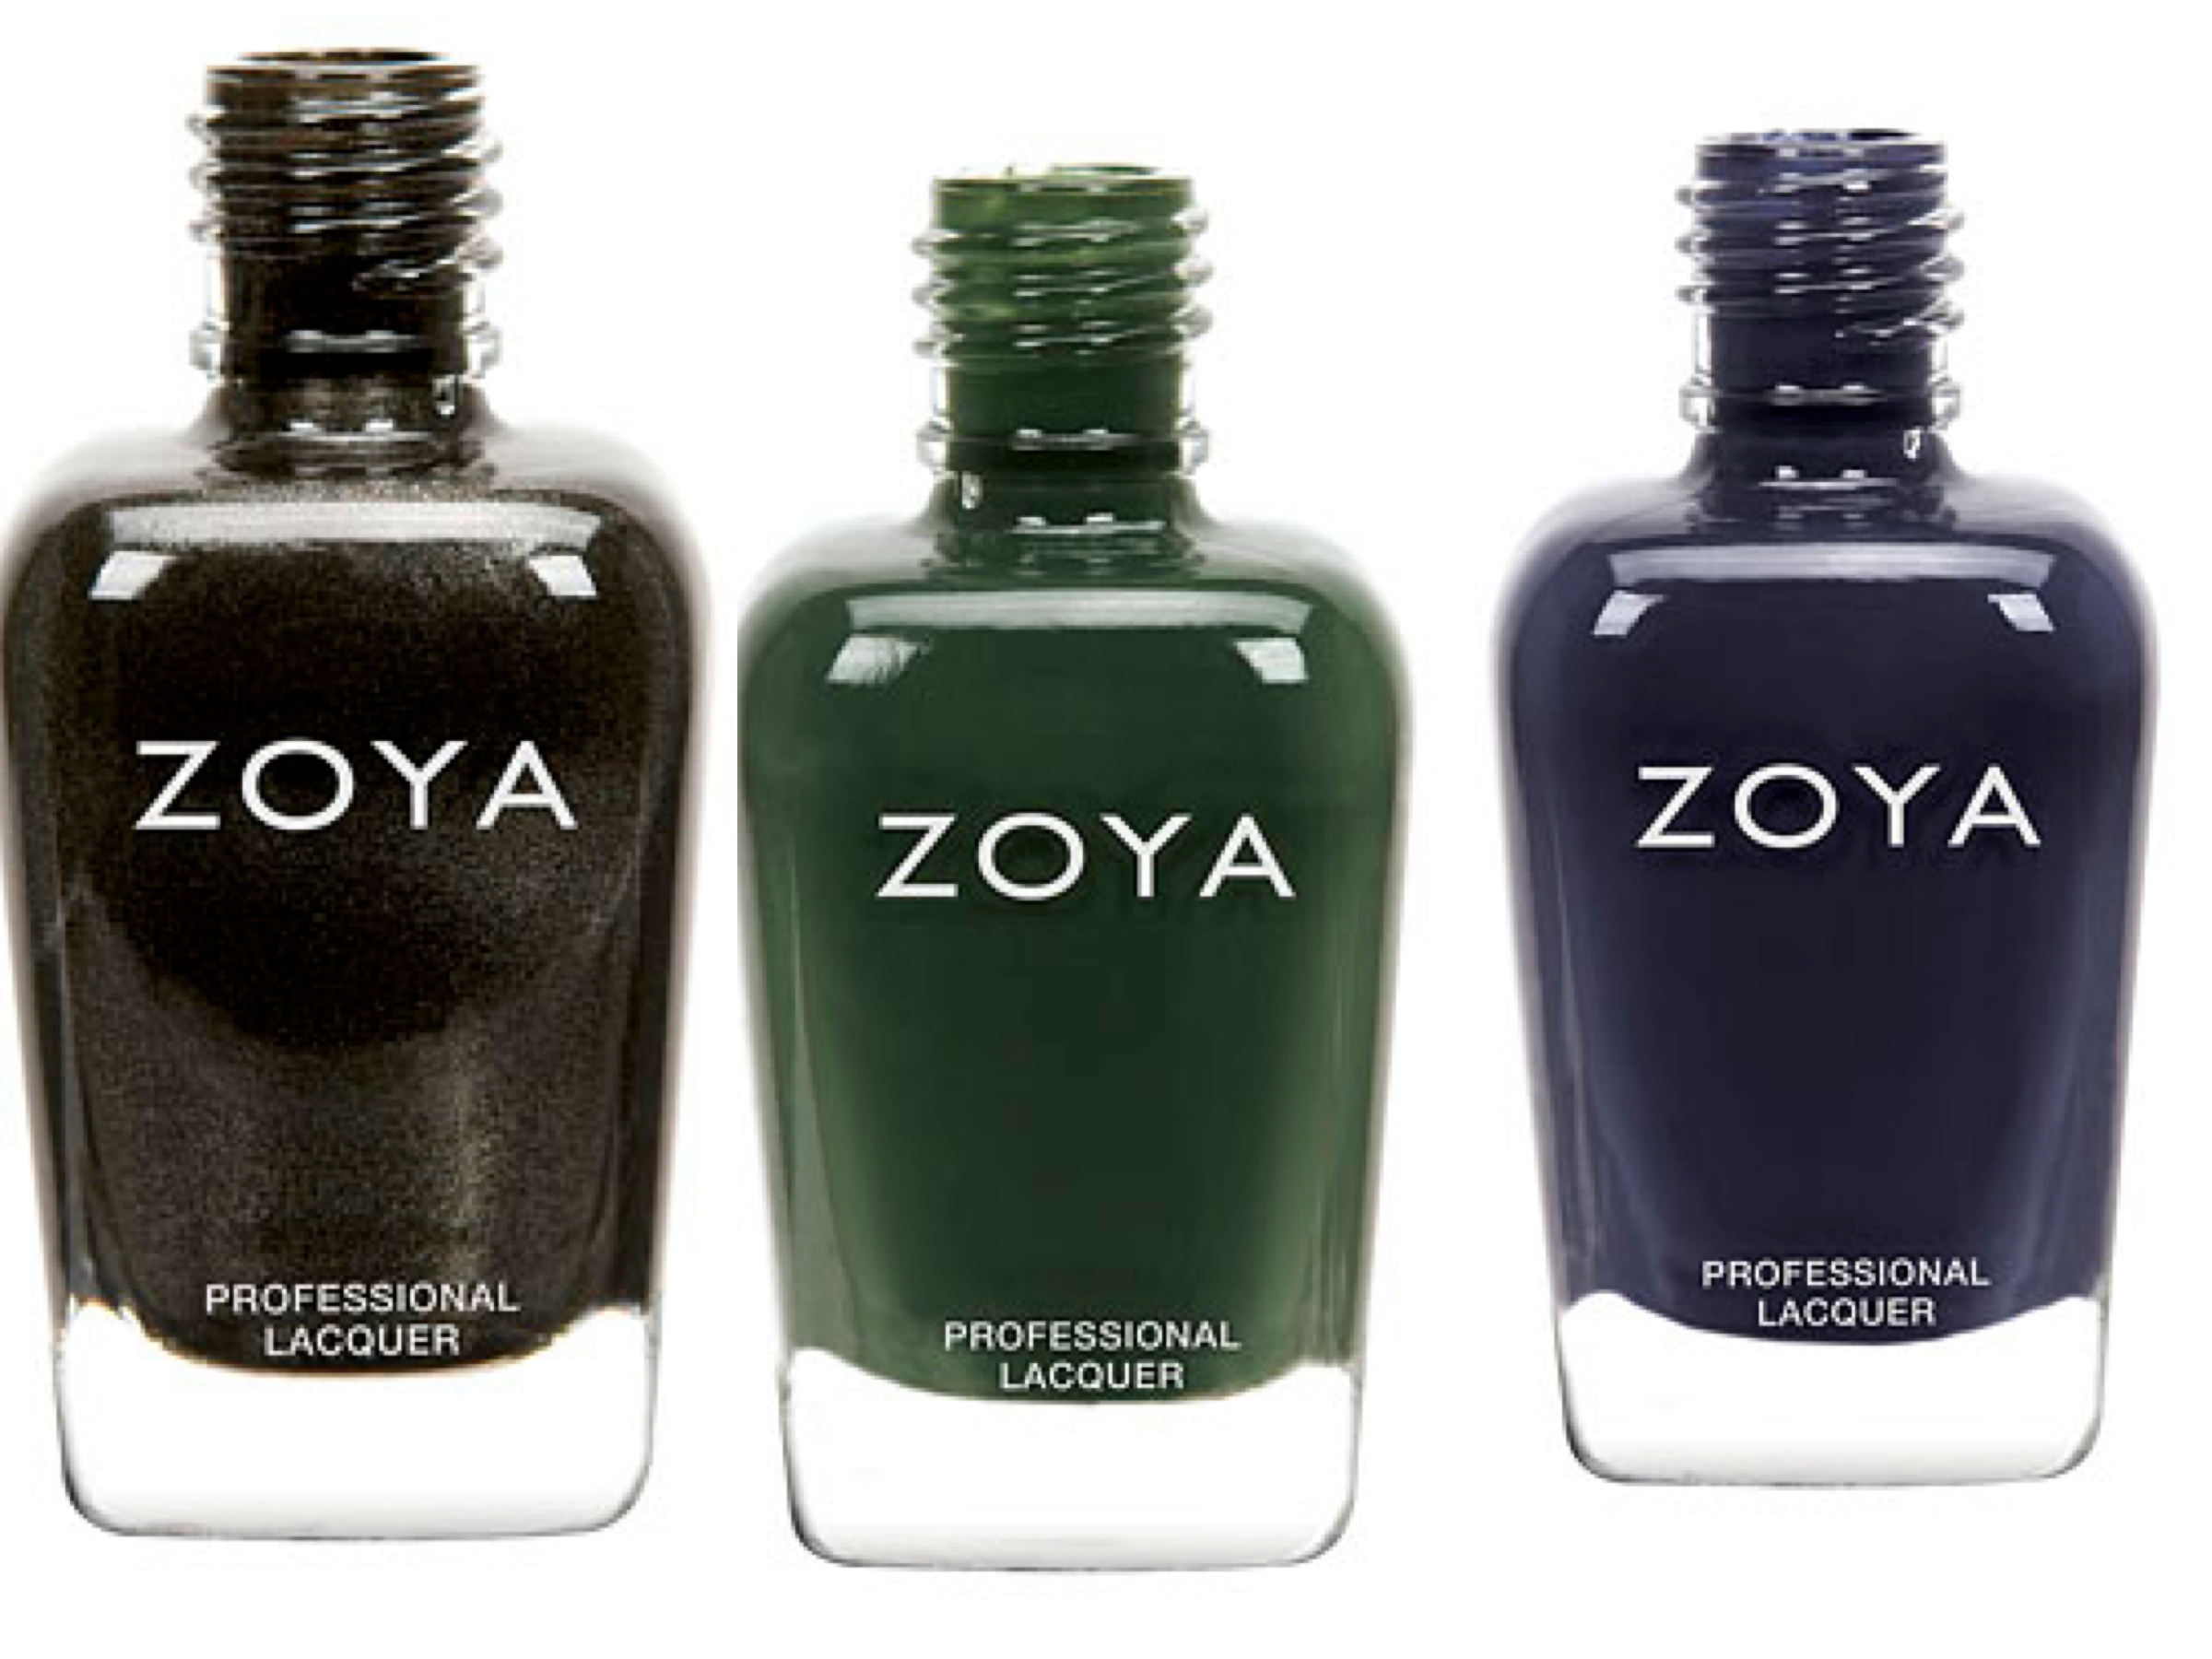 Zoya polish collage